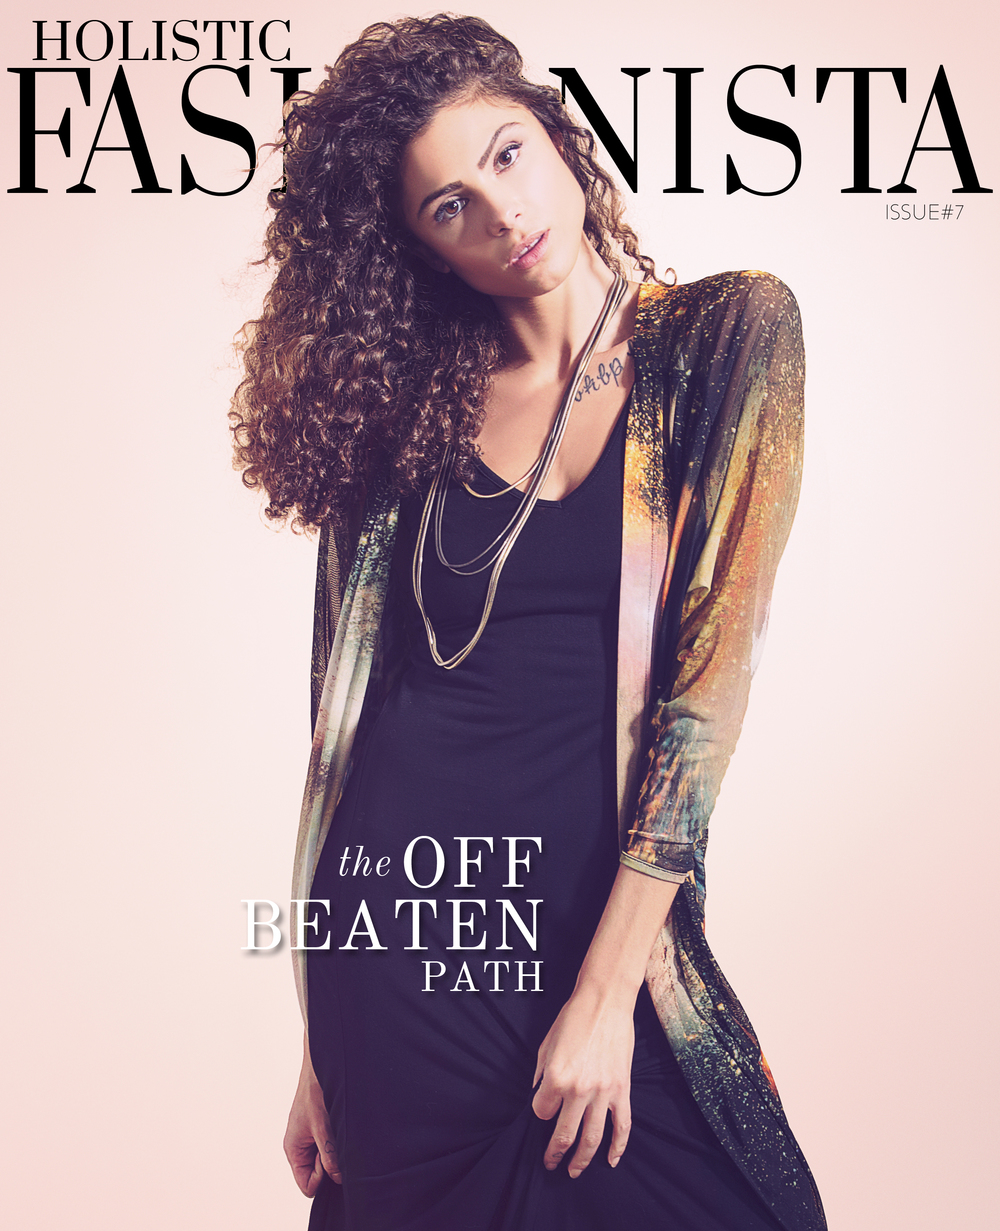 Holistic Fashionista Magazine Issue #8